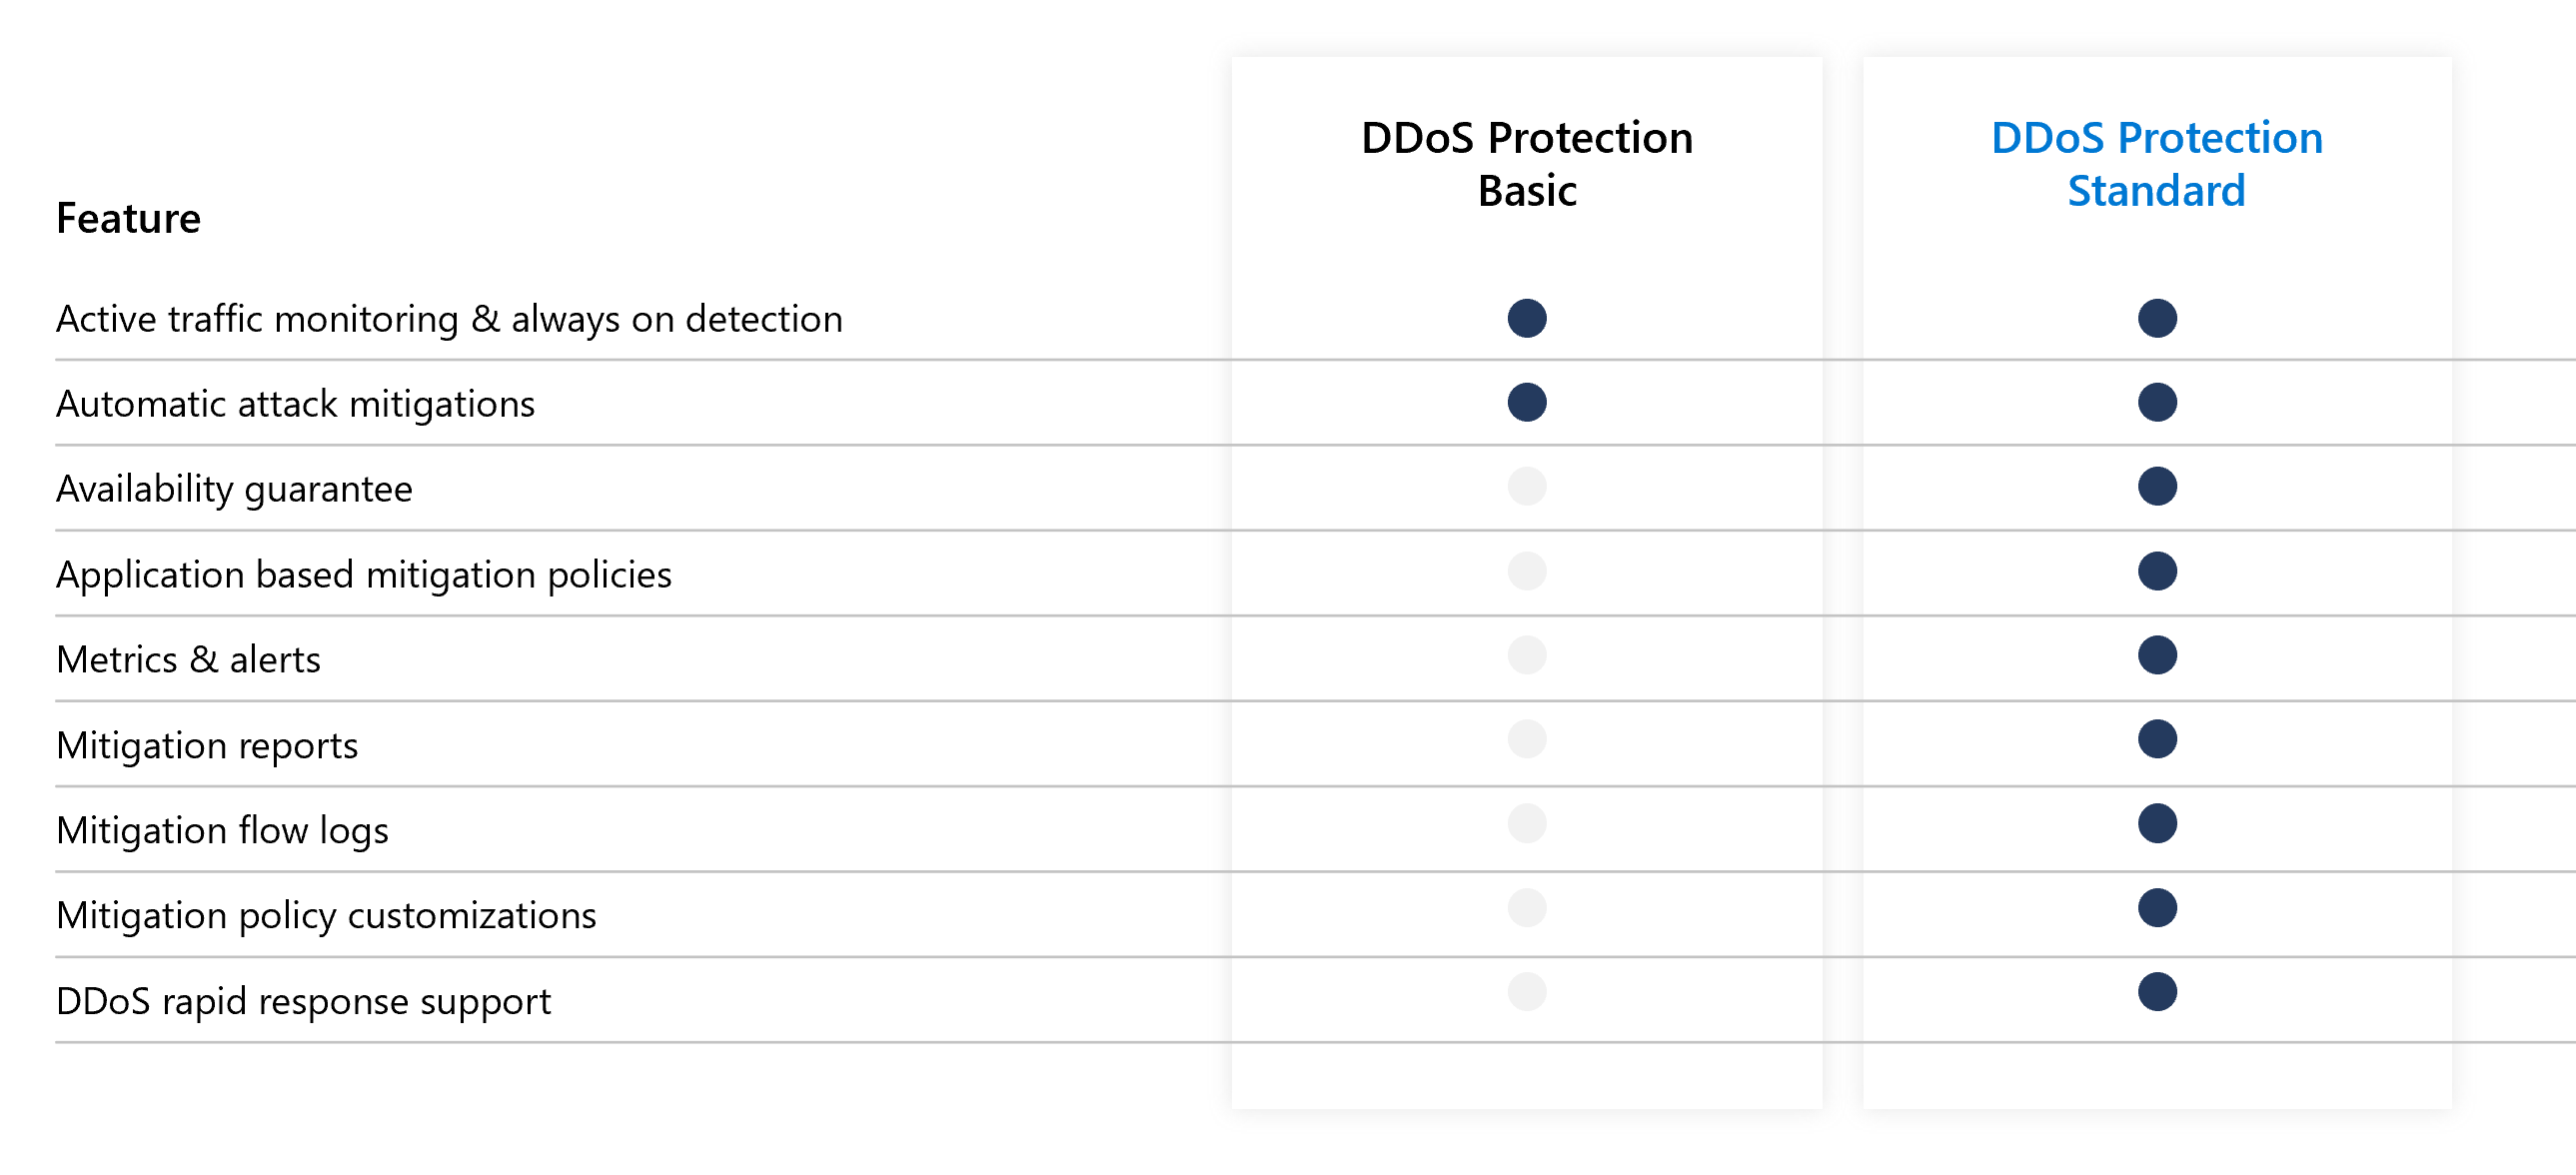 Azure DDoS Protection Basic vs. Standard